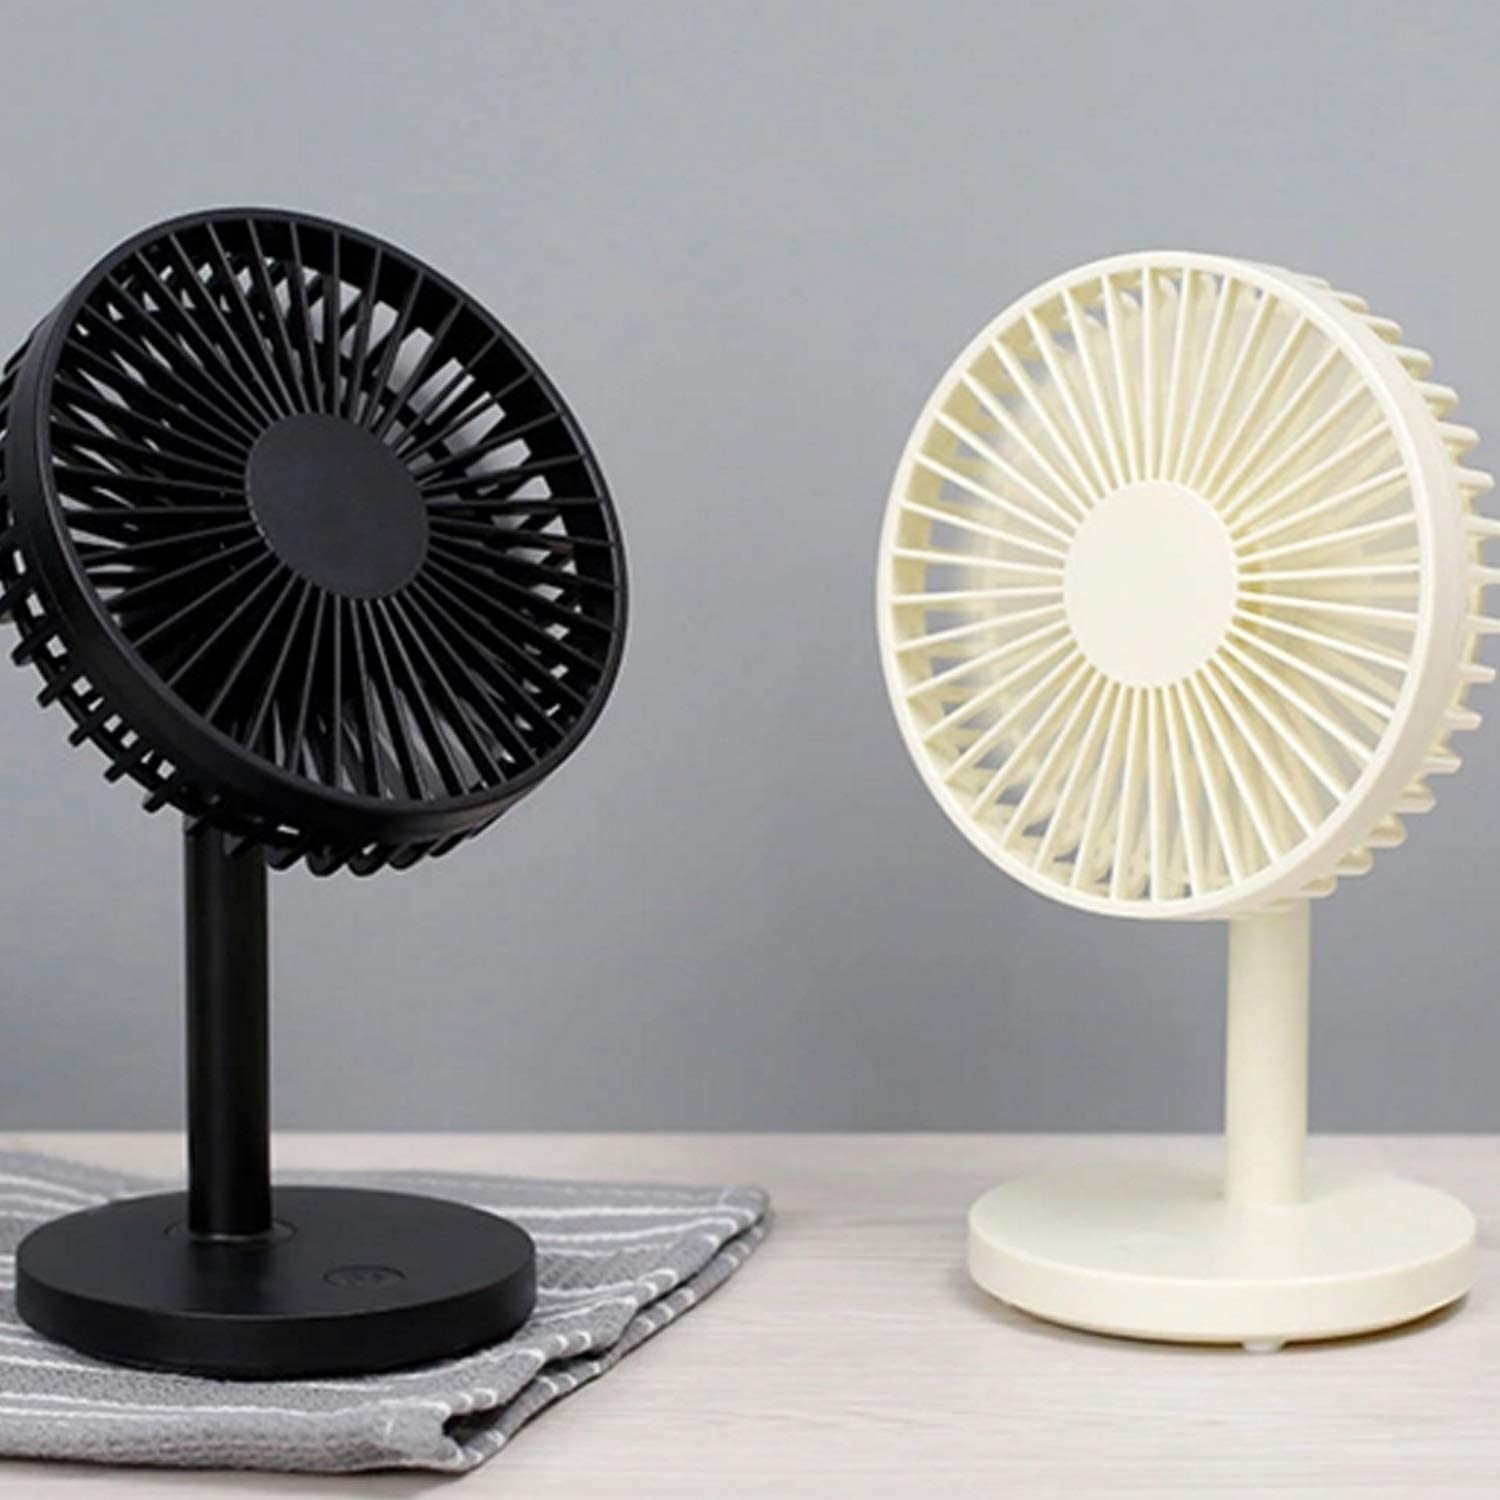 Air Cooler Desktop Mini USB Fan USB Air Cooling Fan for Home//Office Student Dormitory Gadget Color : White